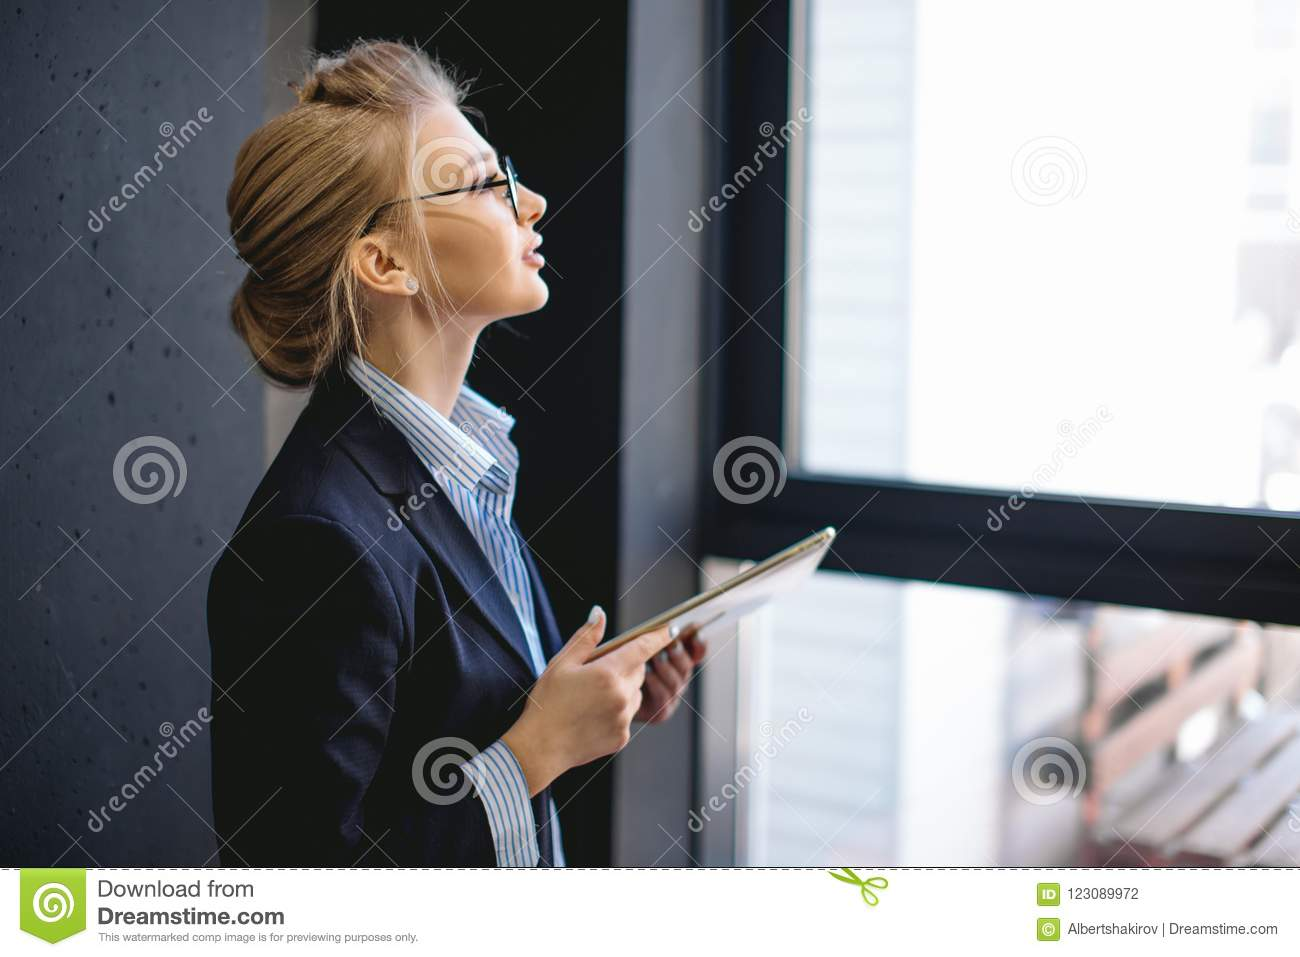 Pleasant woman with fair hair holding her laptop and looking at the window